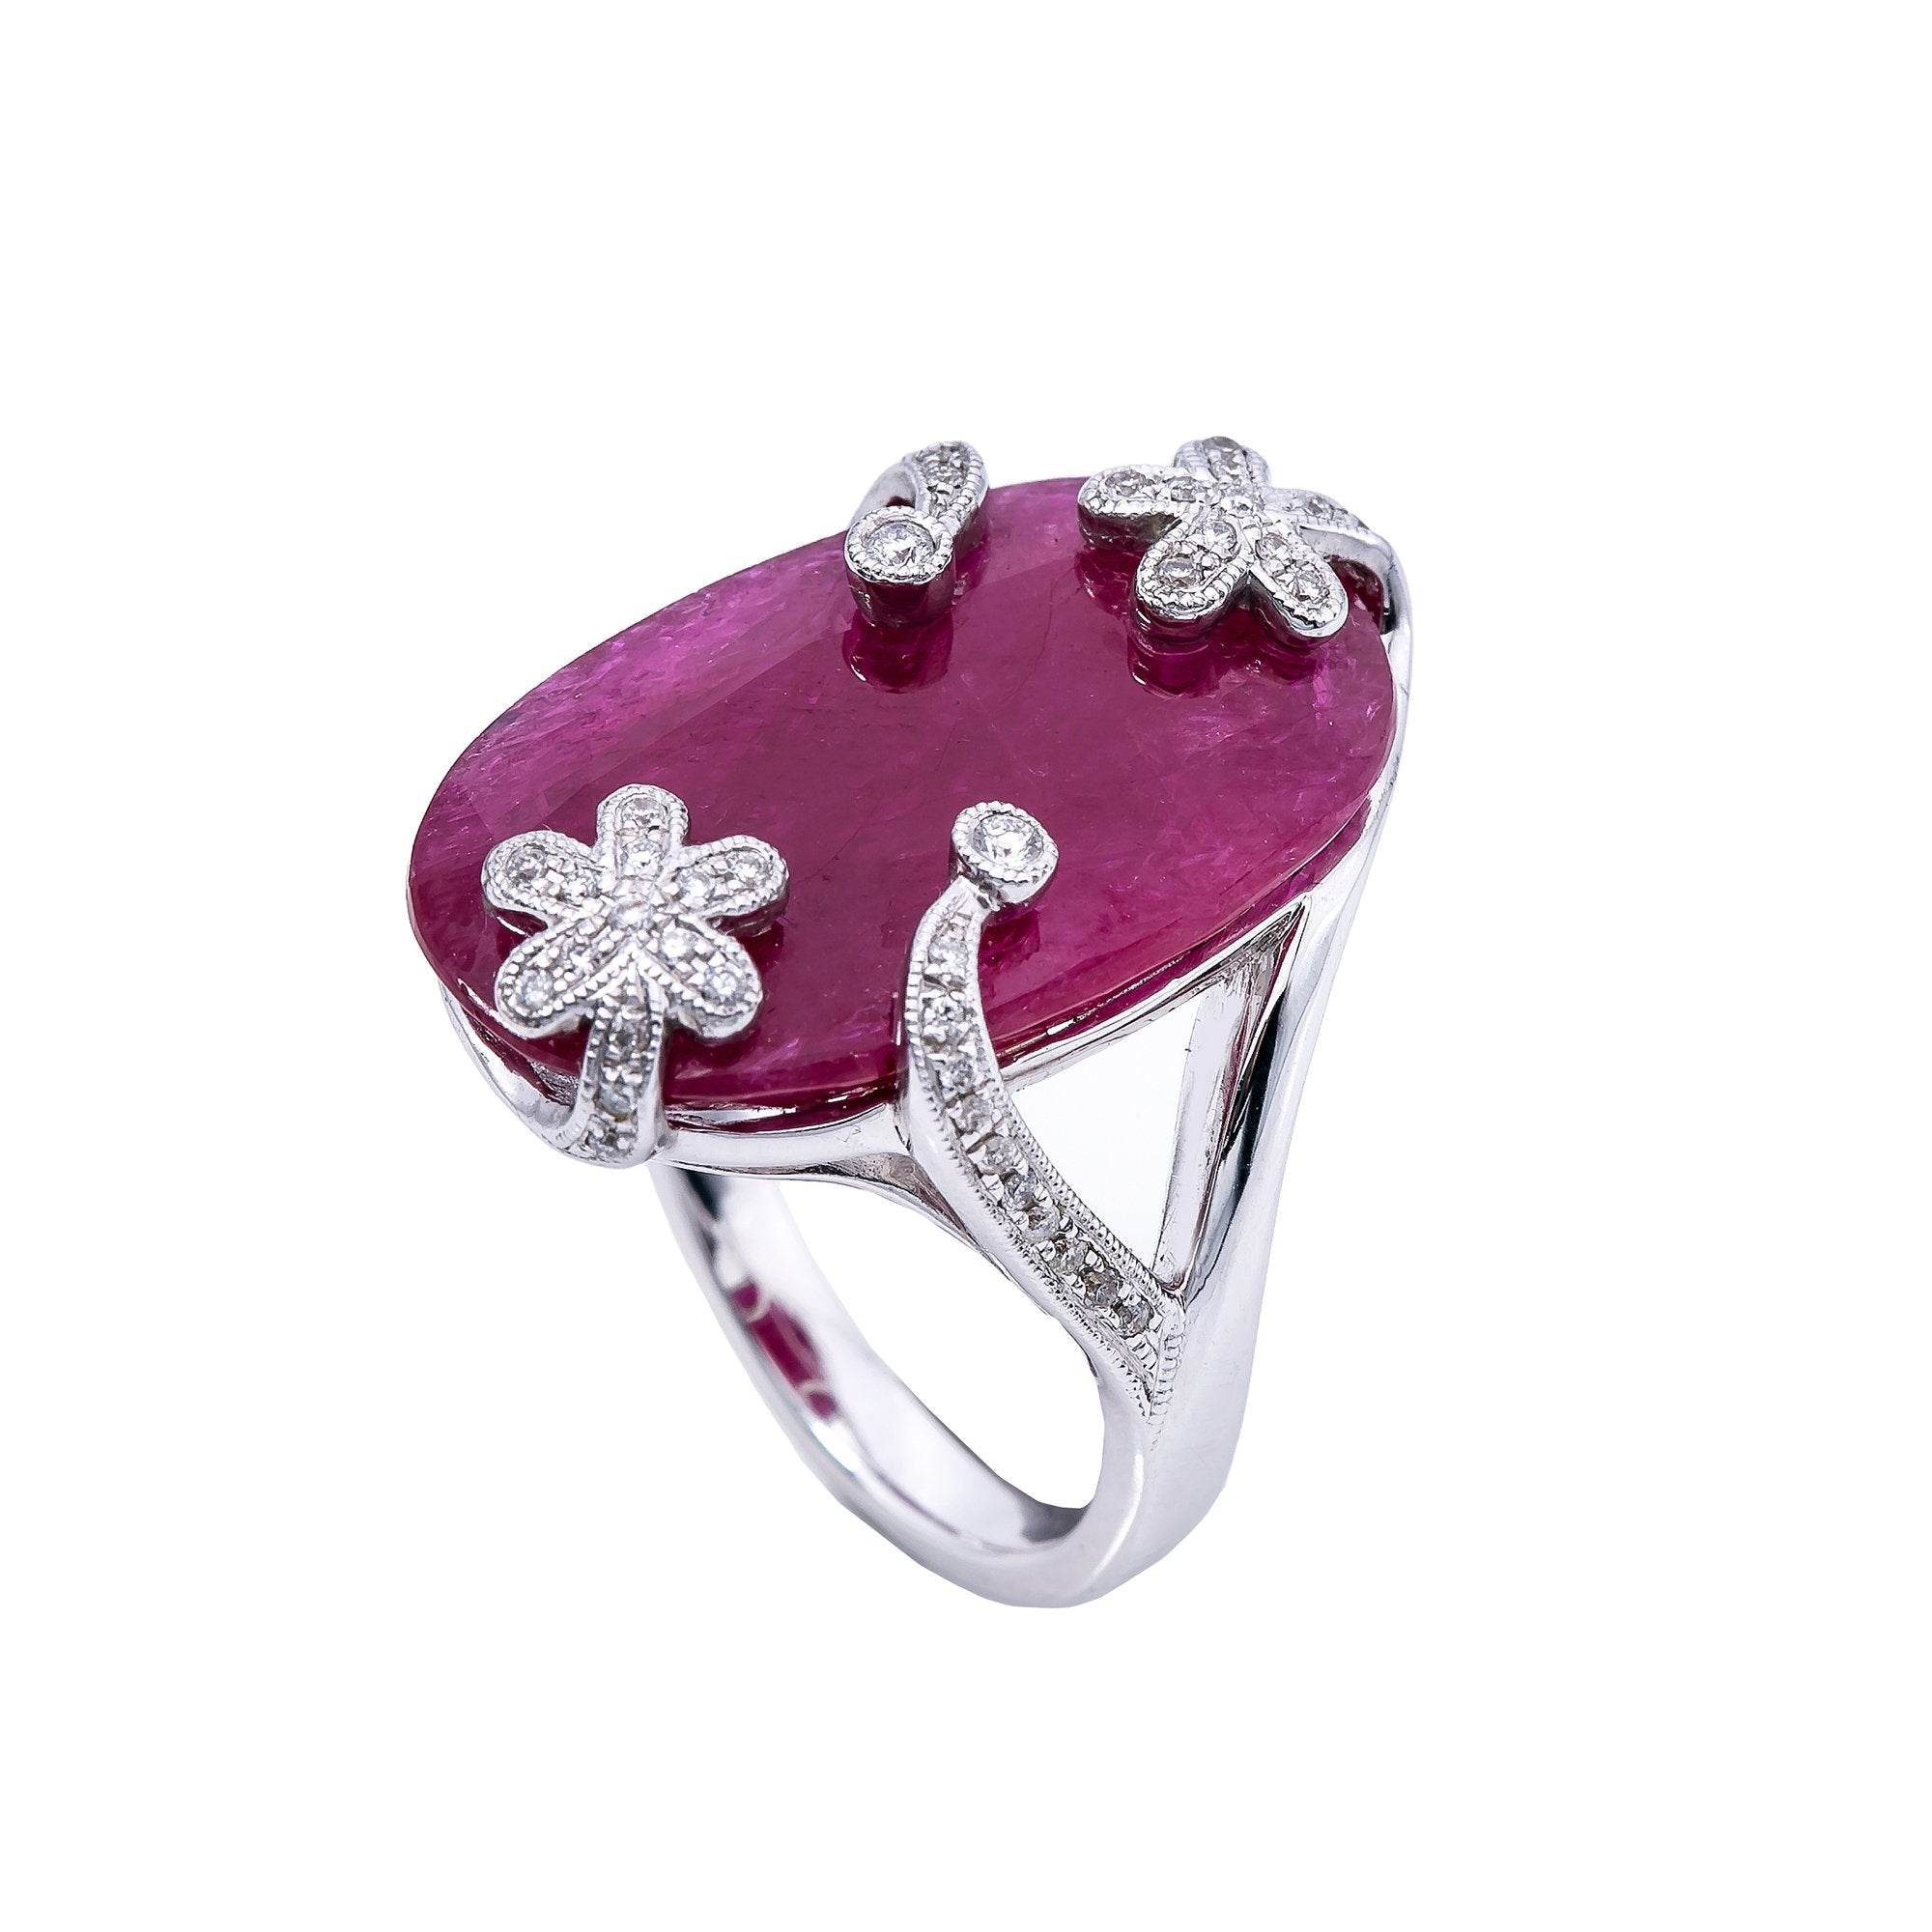 18K White Gold Round Shaped Ruby Ring